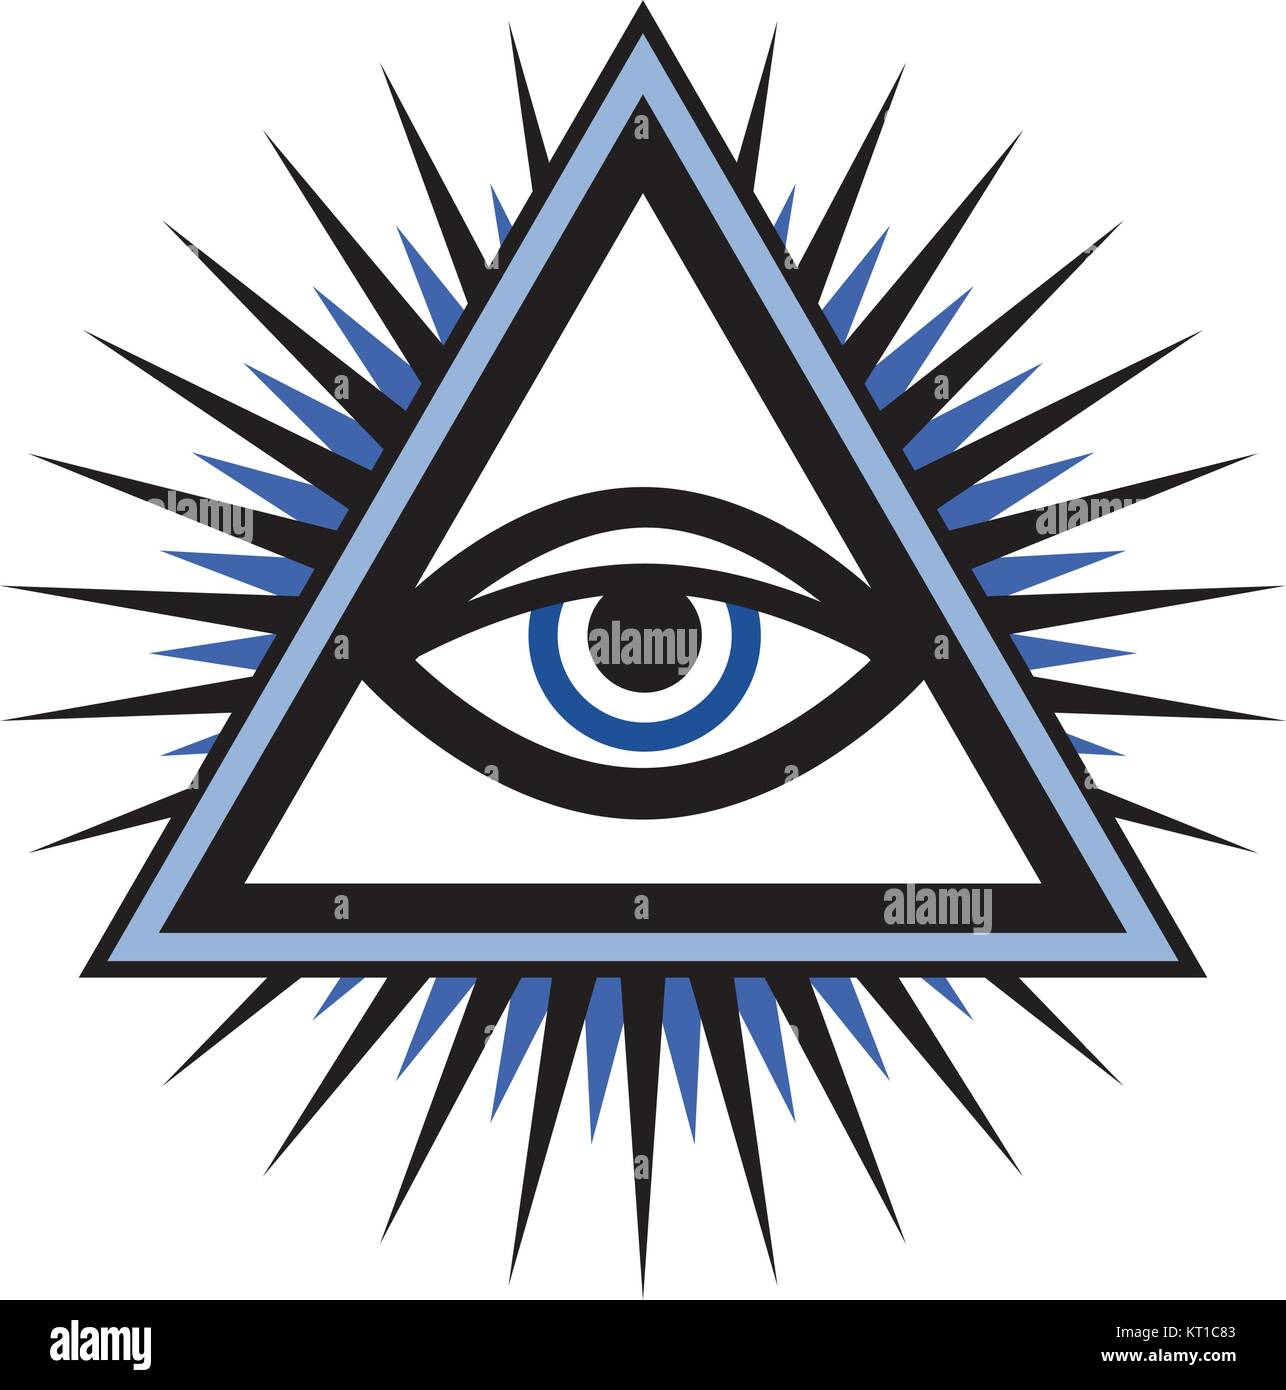 country of the one eye god The eye of god, also known as the eye of providence, is an equilateral triangle with a single eye inside it, usually with rays emanating from it.